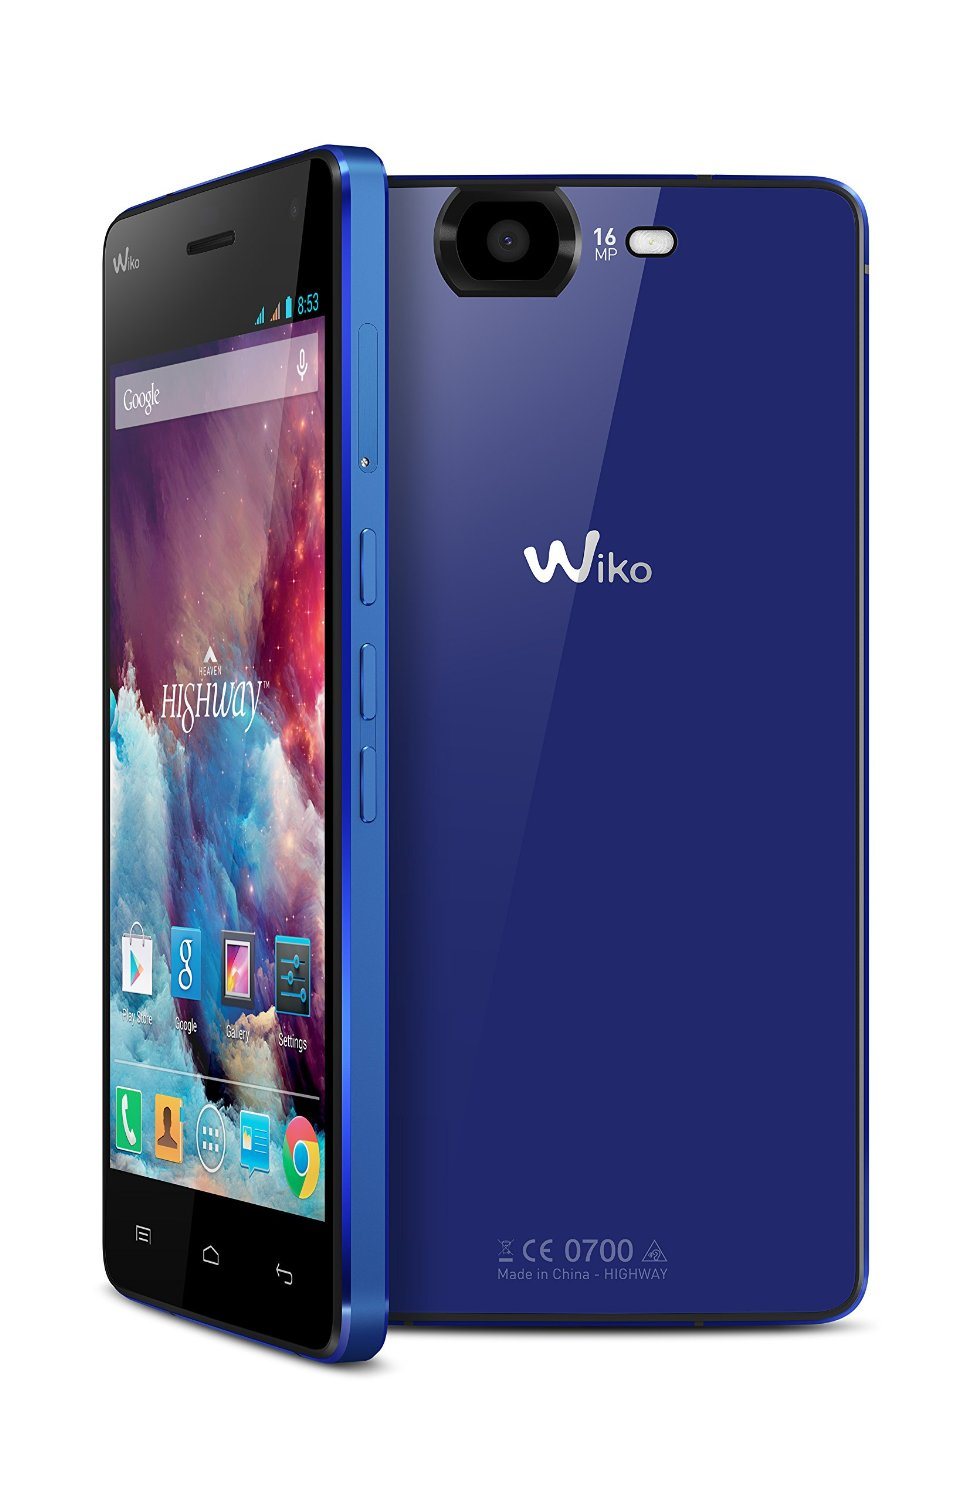 wiko highway dual sim android smartphone 16gb in blau. Black Bedroom Furniture Sets. Home Design Ideas